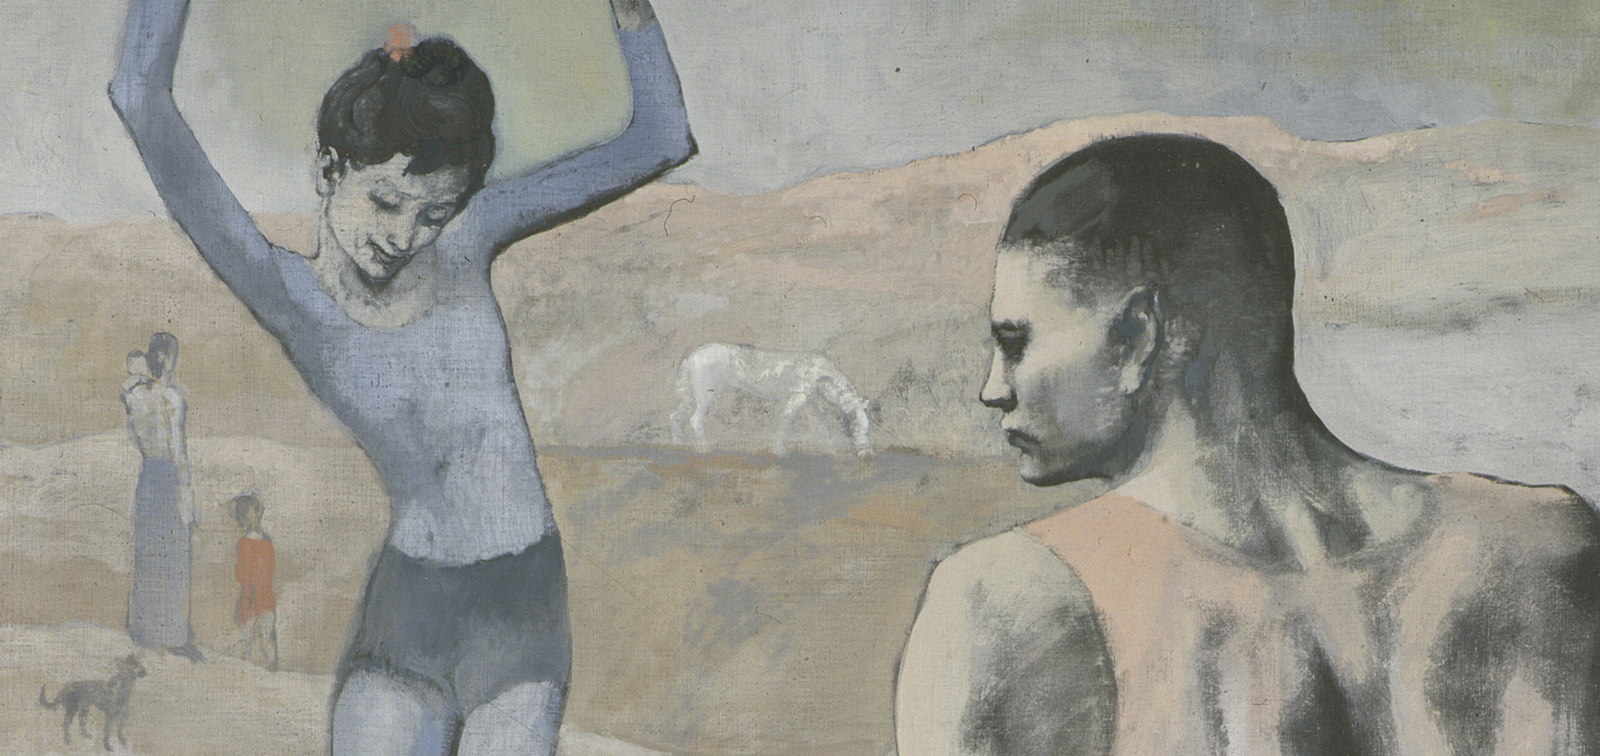 The invited work: Acrobat on a Ball, Picasso